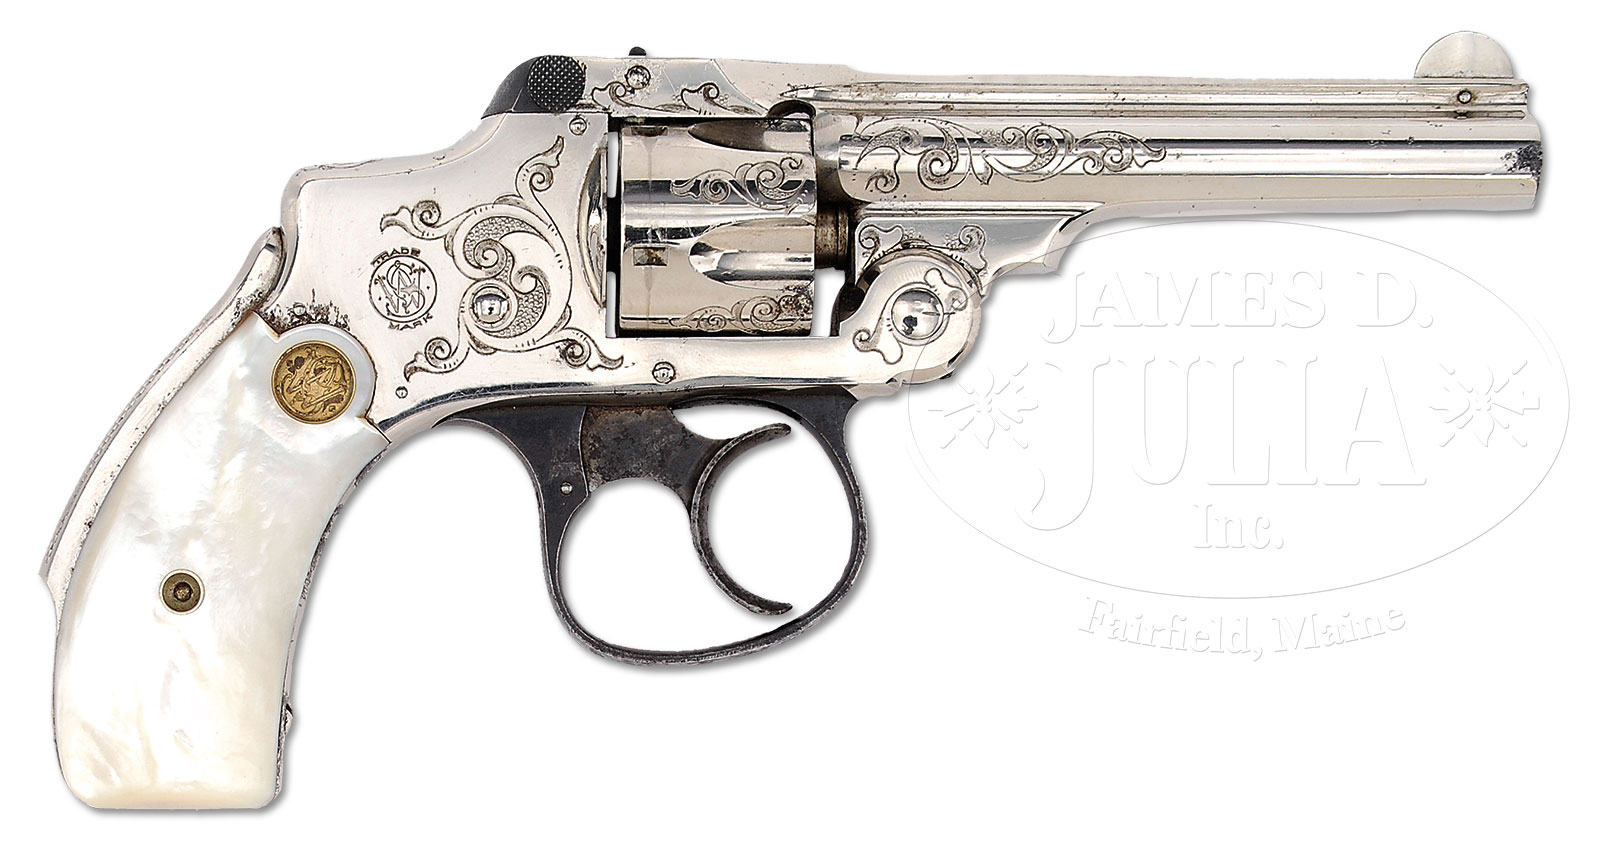 VERY FINE FACTORY ENGRAVED AND INSCRIBED SMITH & WESSON 32